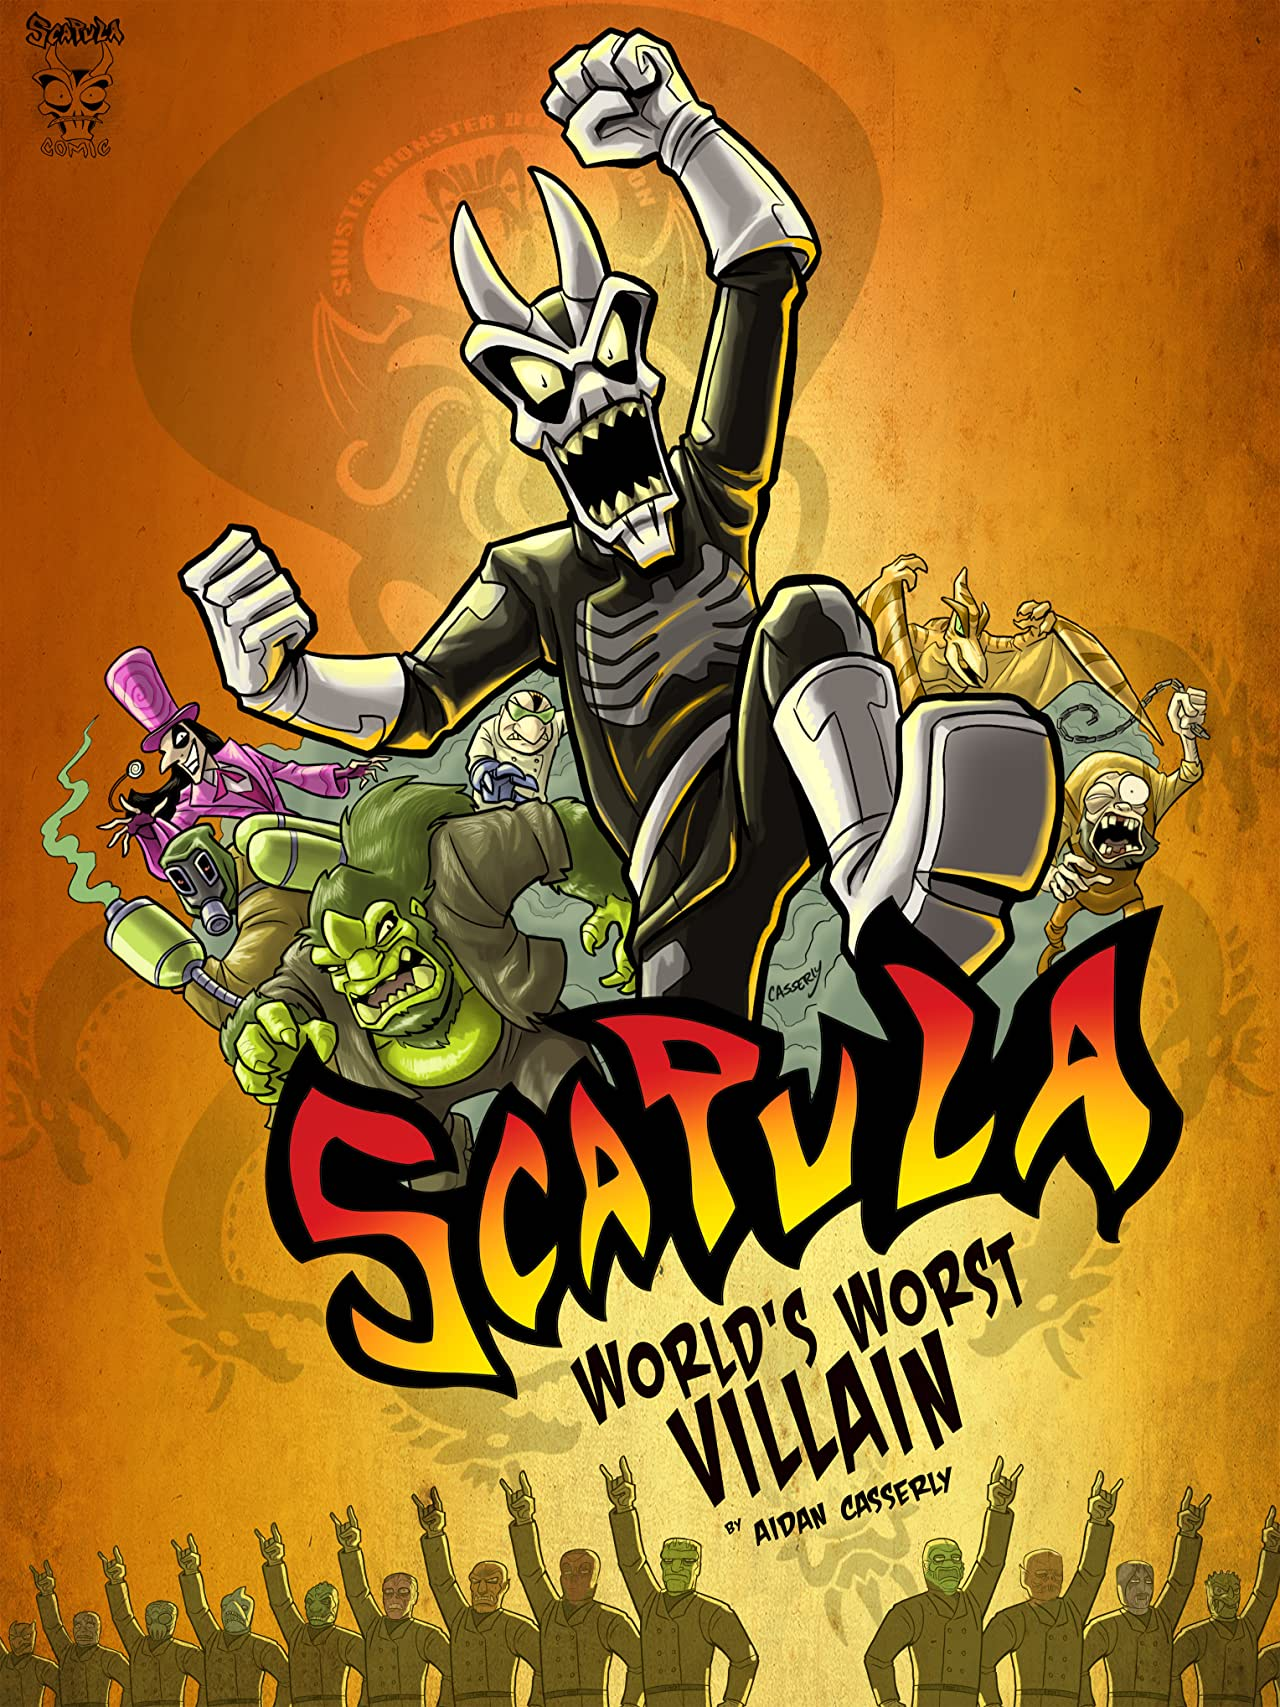 Scapula: World's Worst Villain Redux